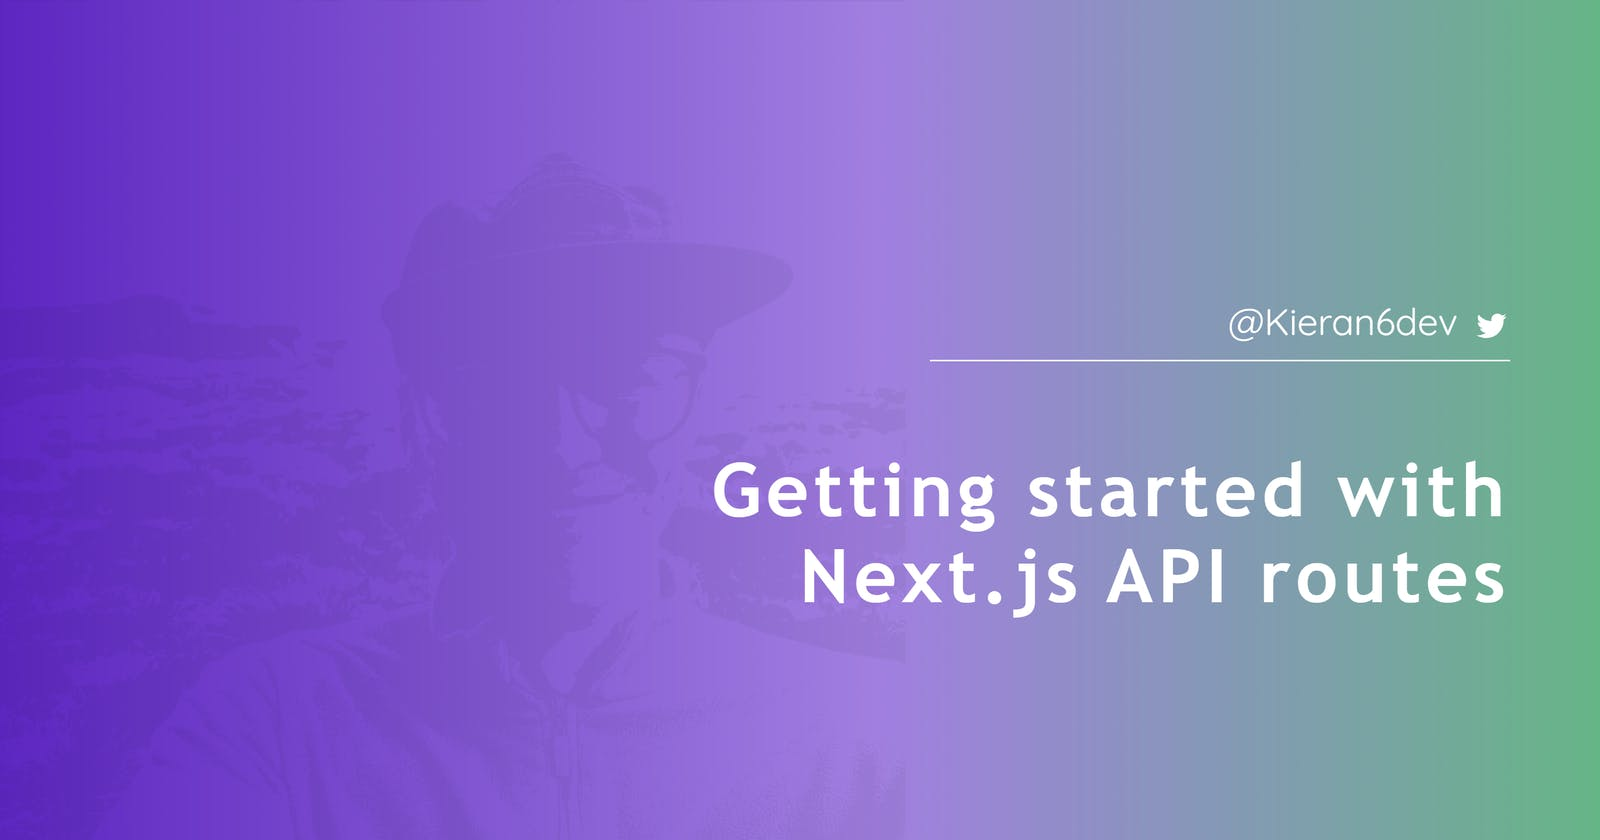 Getting started with Next.js API routes